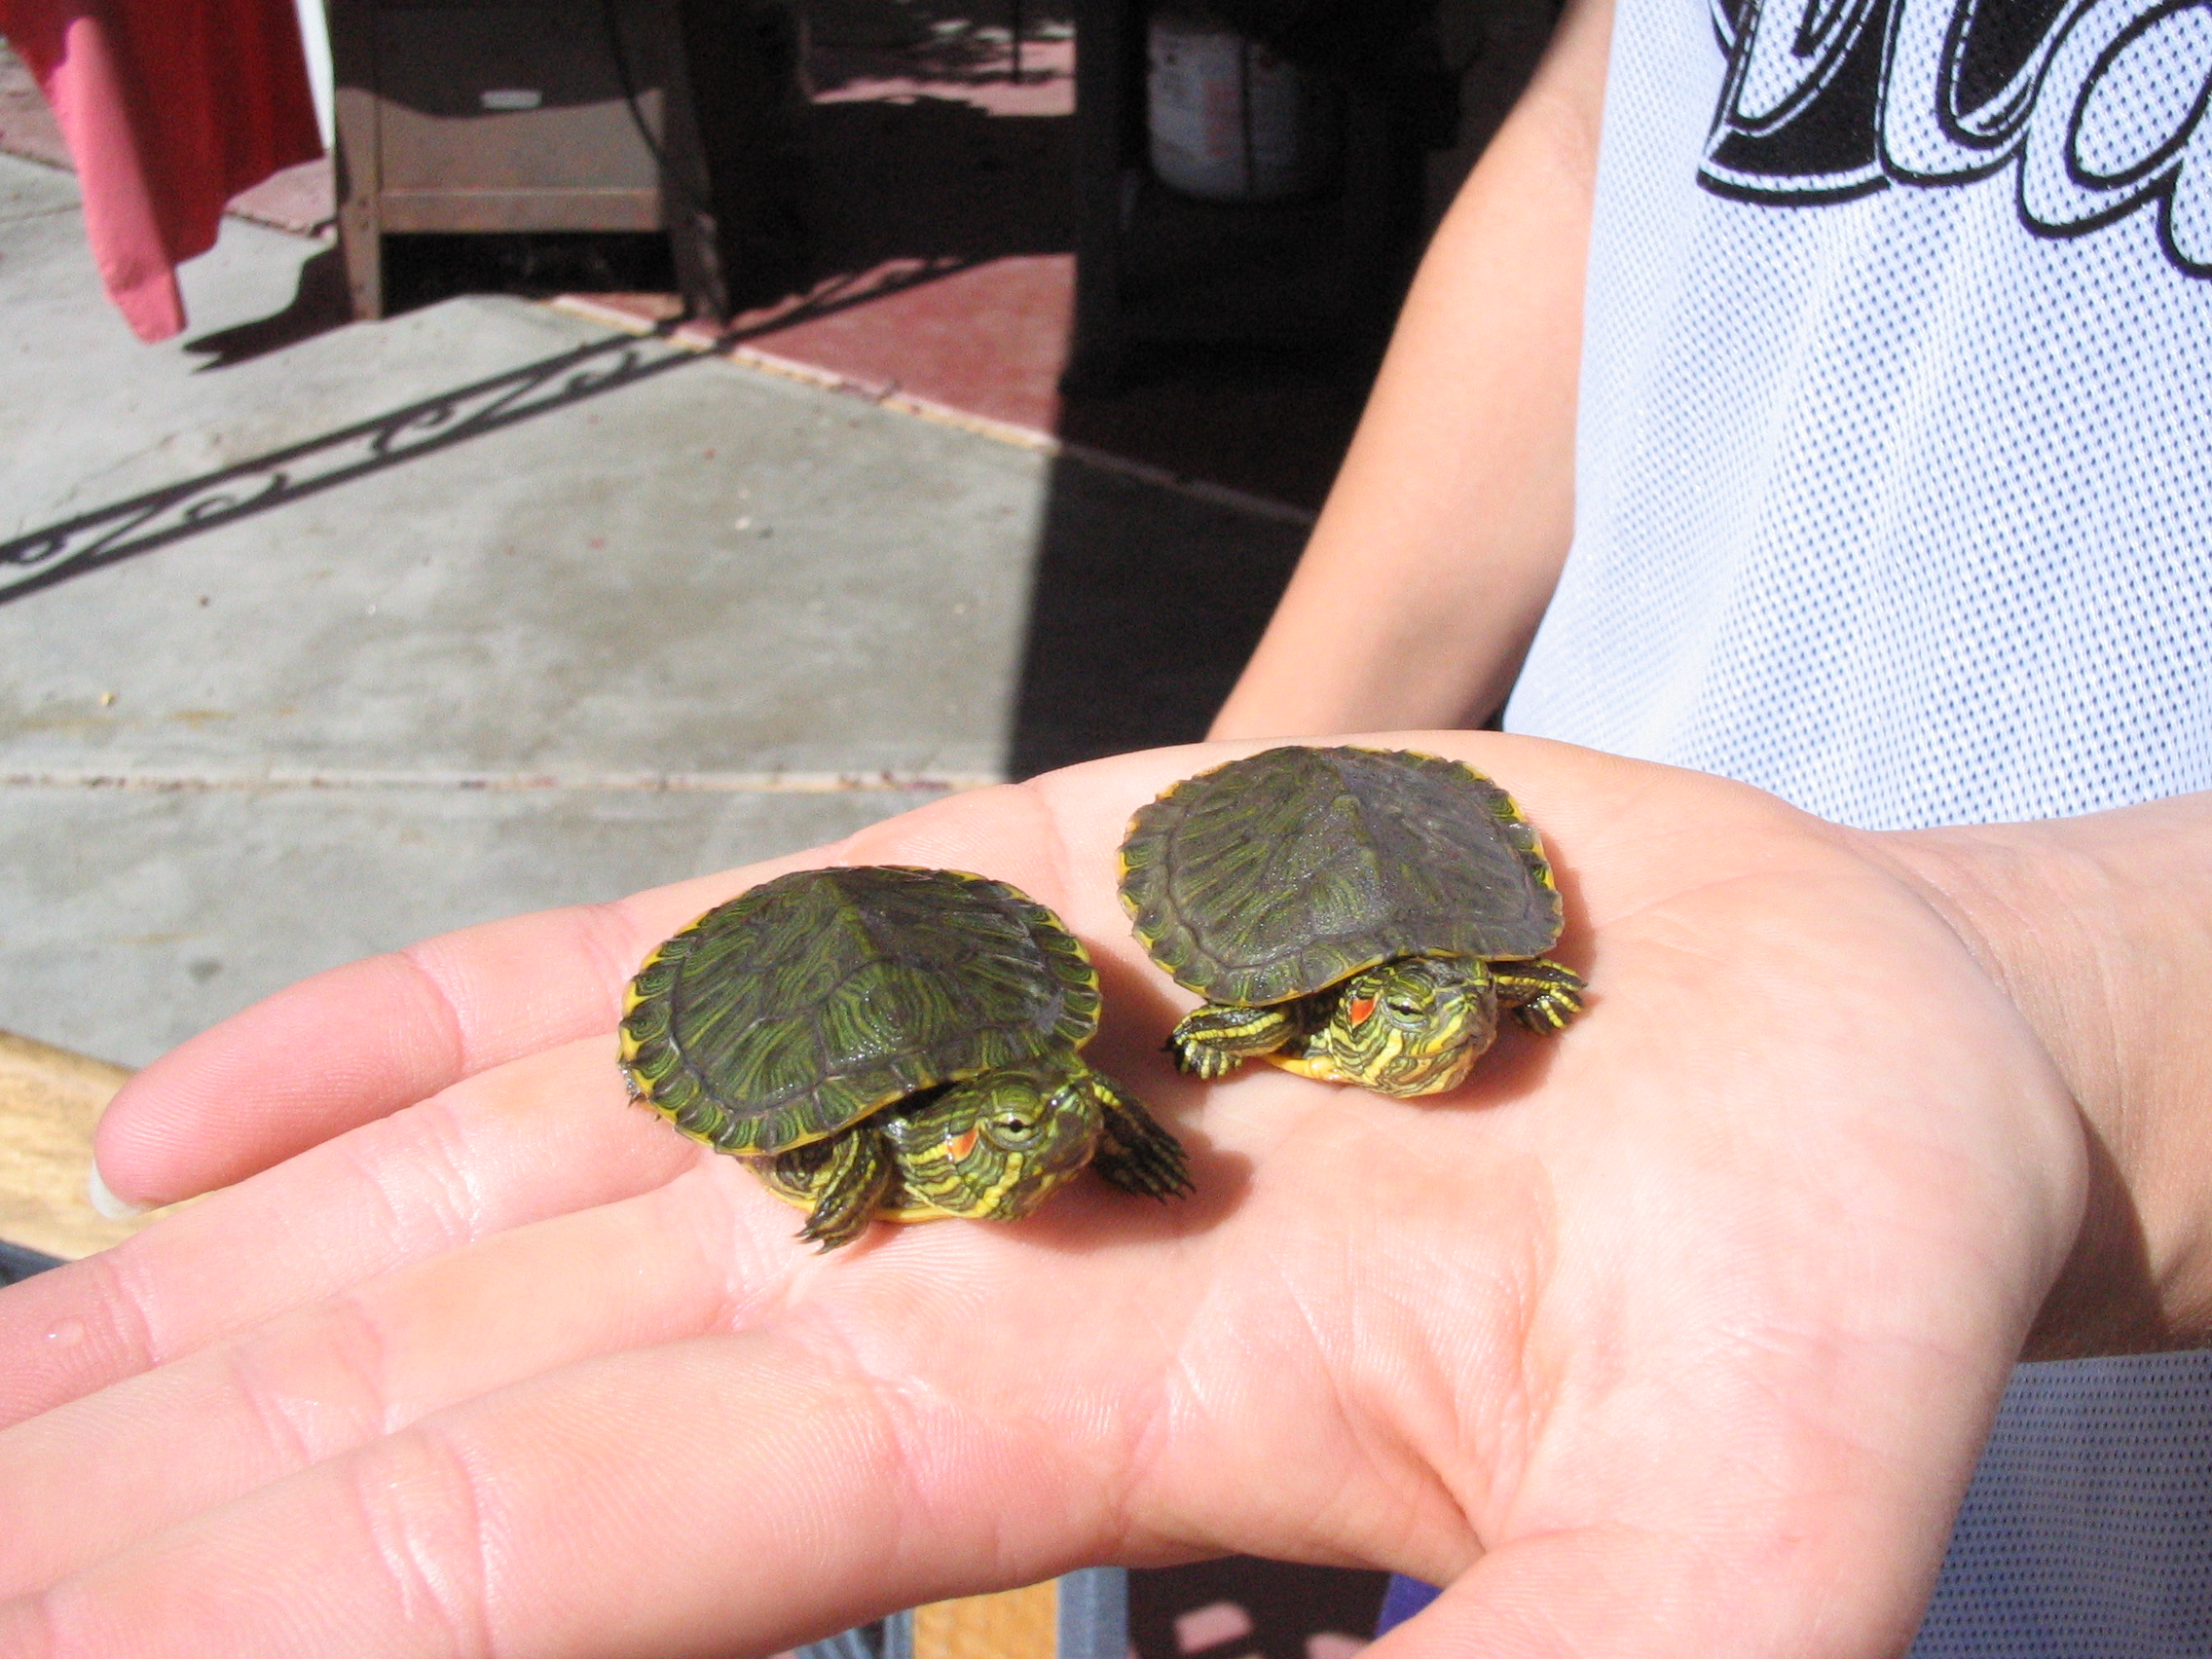 File Baby Red Eared Sliders Jpg Wikimedia Commons,Bleeding Heart Flower Tattoo Meaning